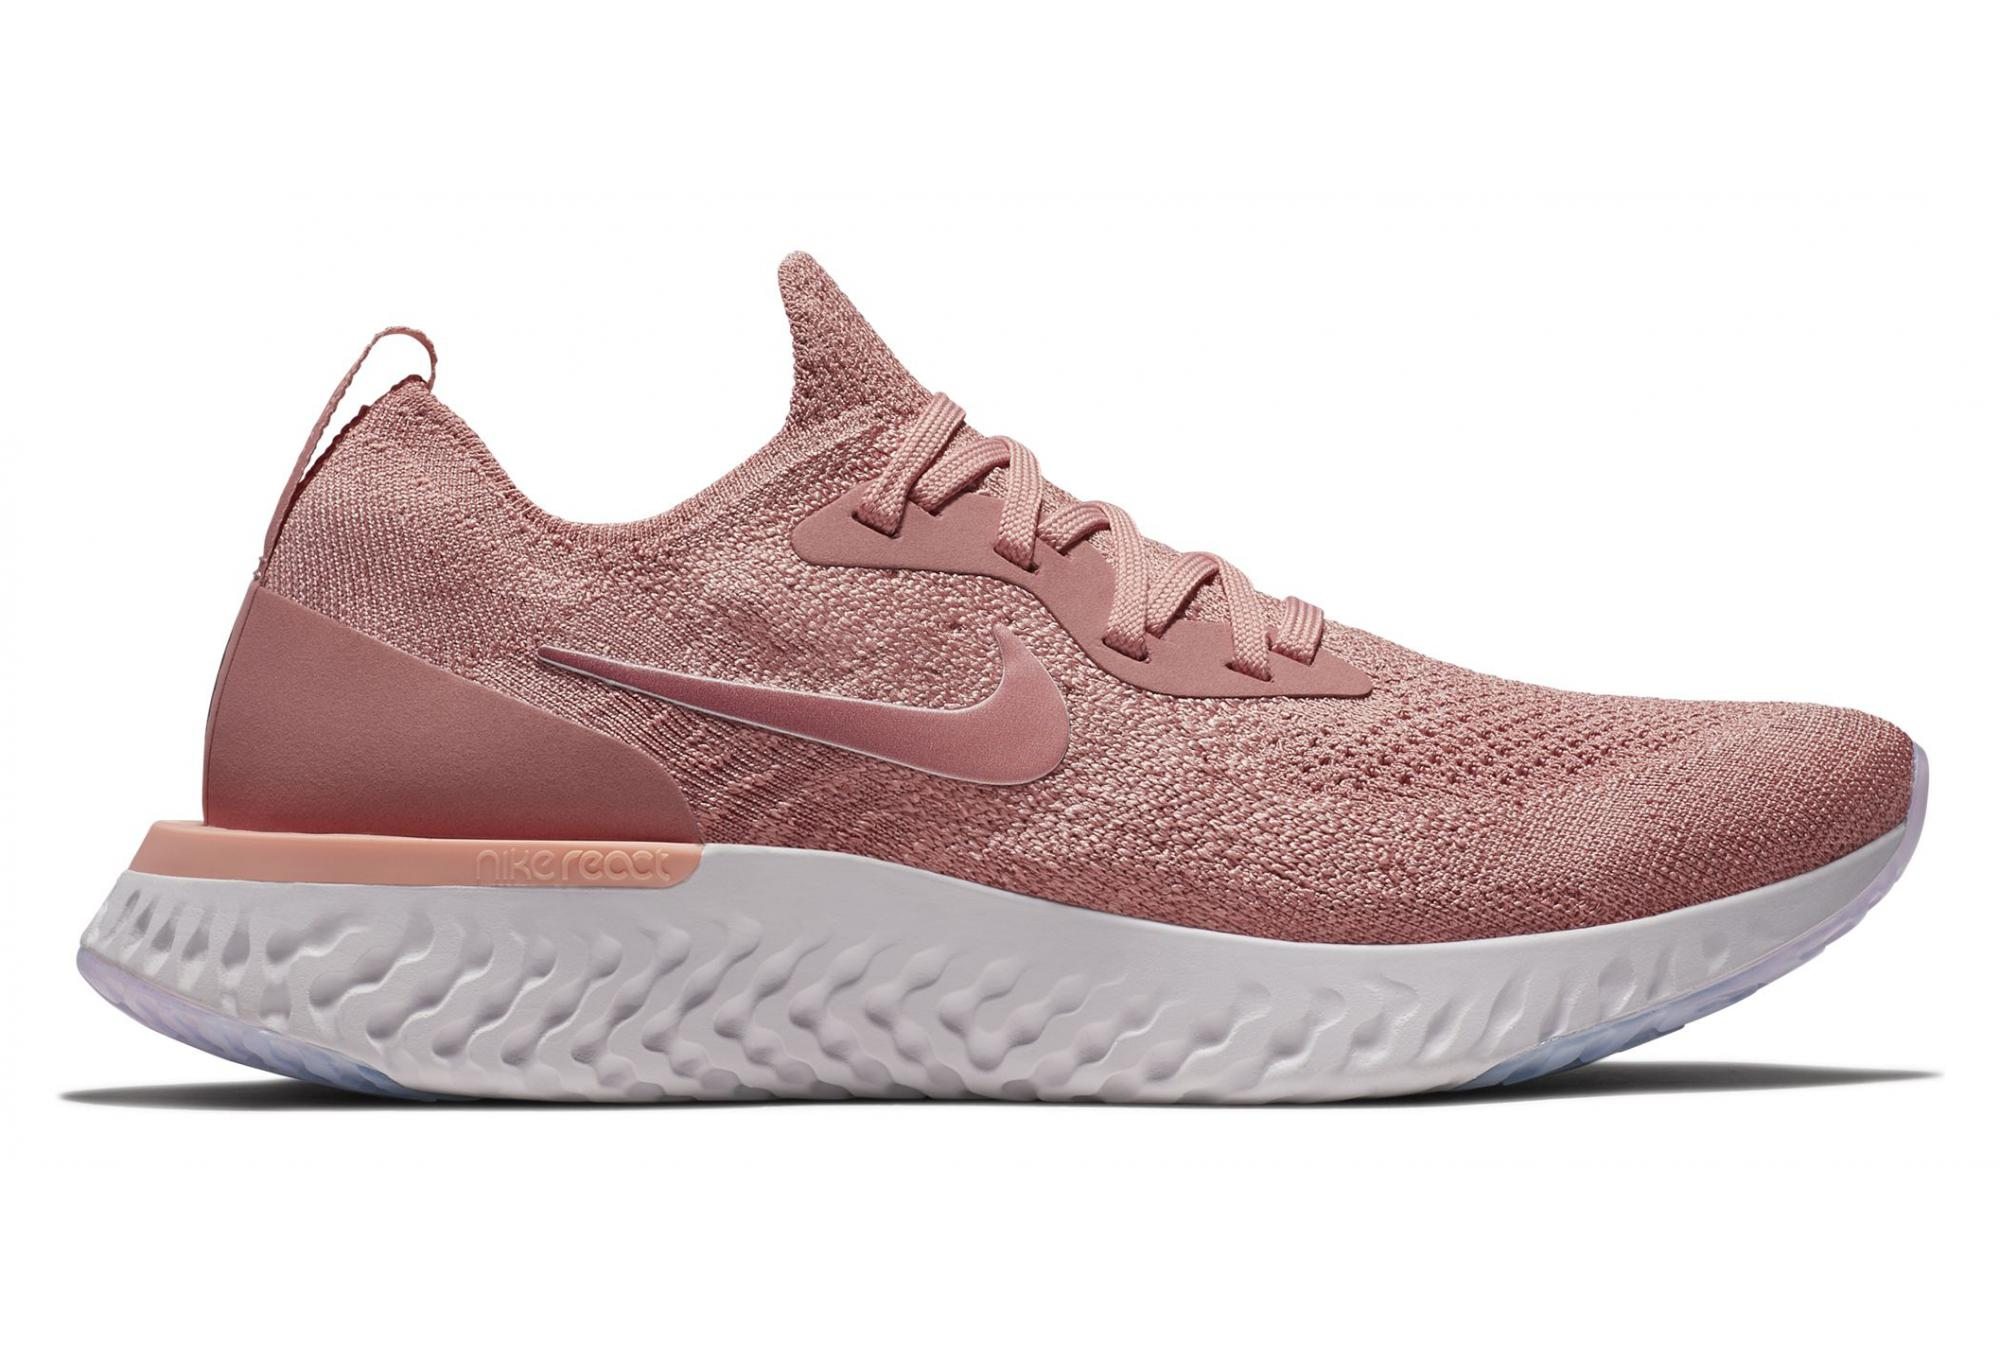 new product 27cc2 8a951 Nike Shoes Epic React Flyknit Pink Women  Alltricks.com